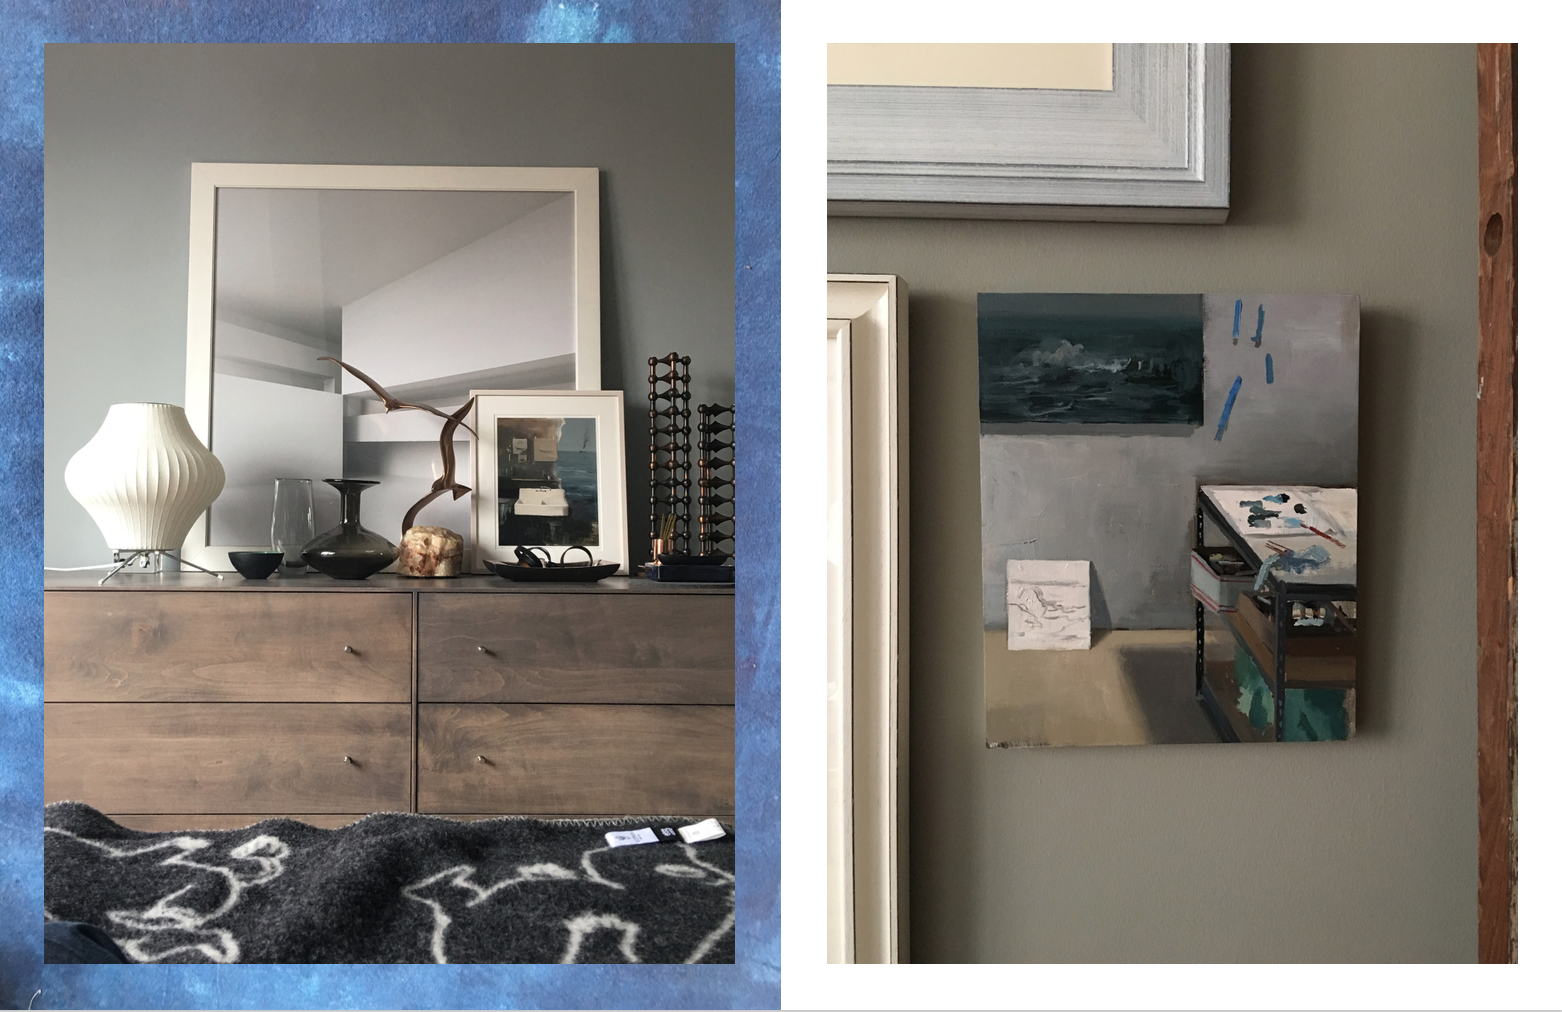 Left: My bedroom which includes a Bubble Lamp by  George Nelson , Another sculpture by  Curtis Jere , Painting by  Jeremy Miranda , Right: Another painting by artist Jeremy Miranda. Photography: Marcus Hay for SMH, Inc